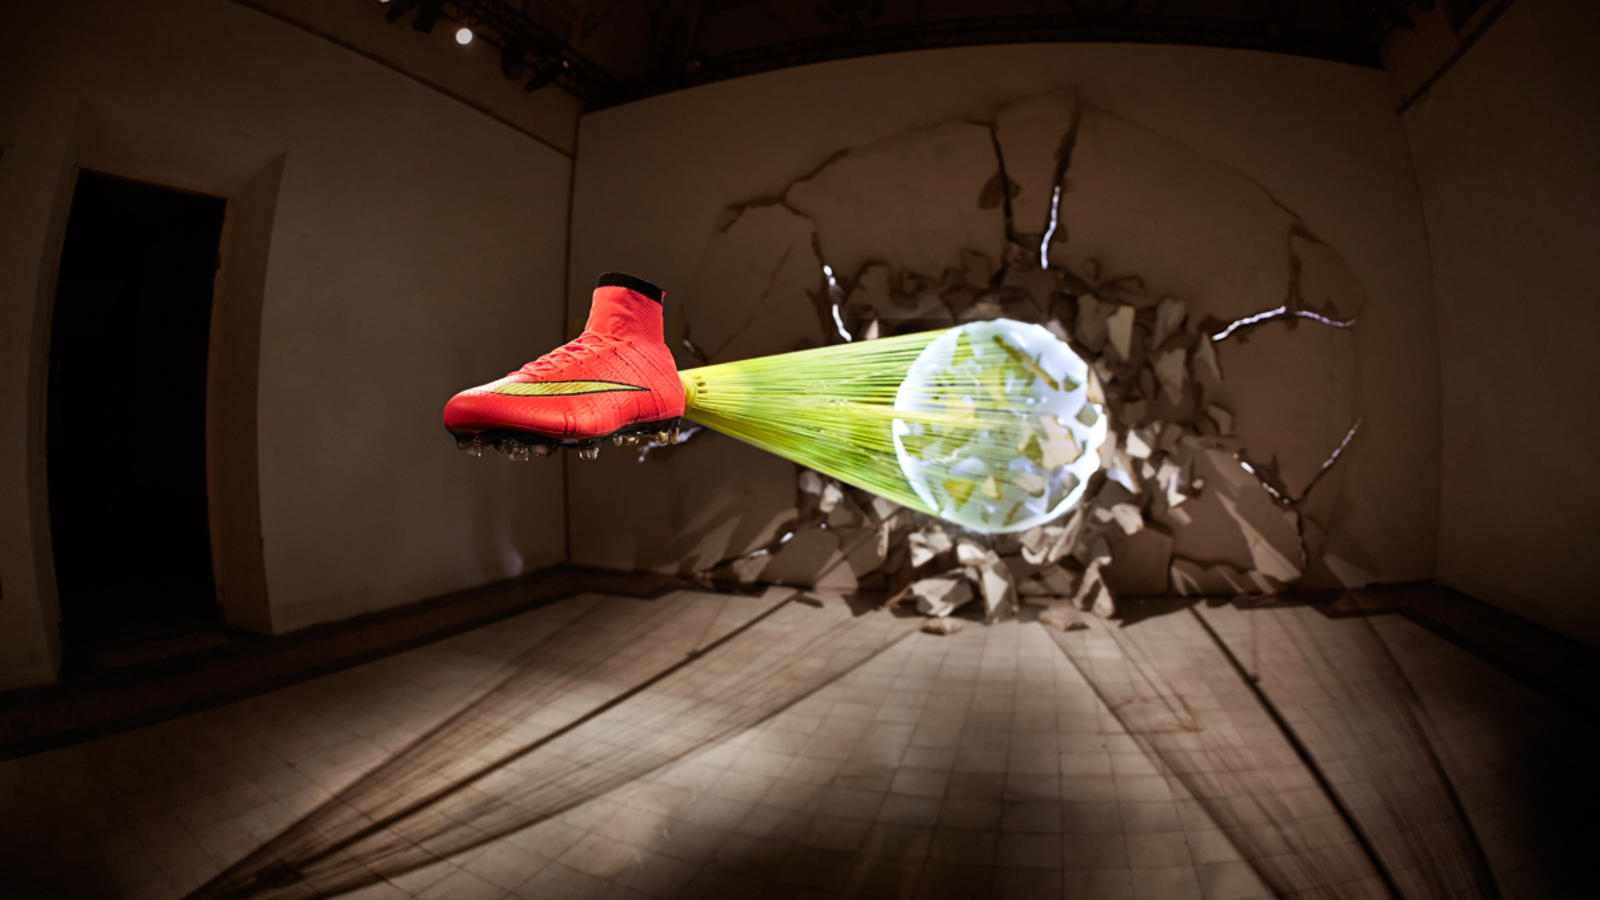 Mercurial Superfly Launch6 2014 04 24